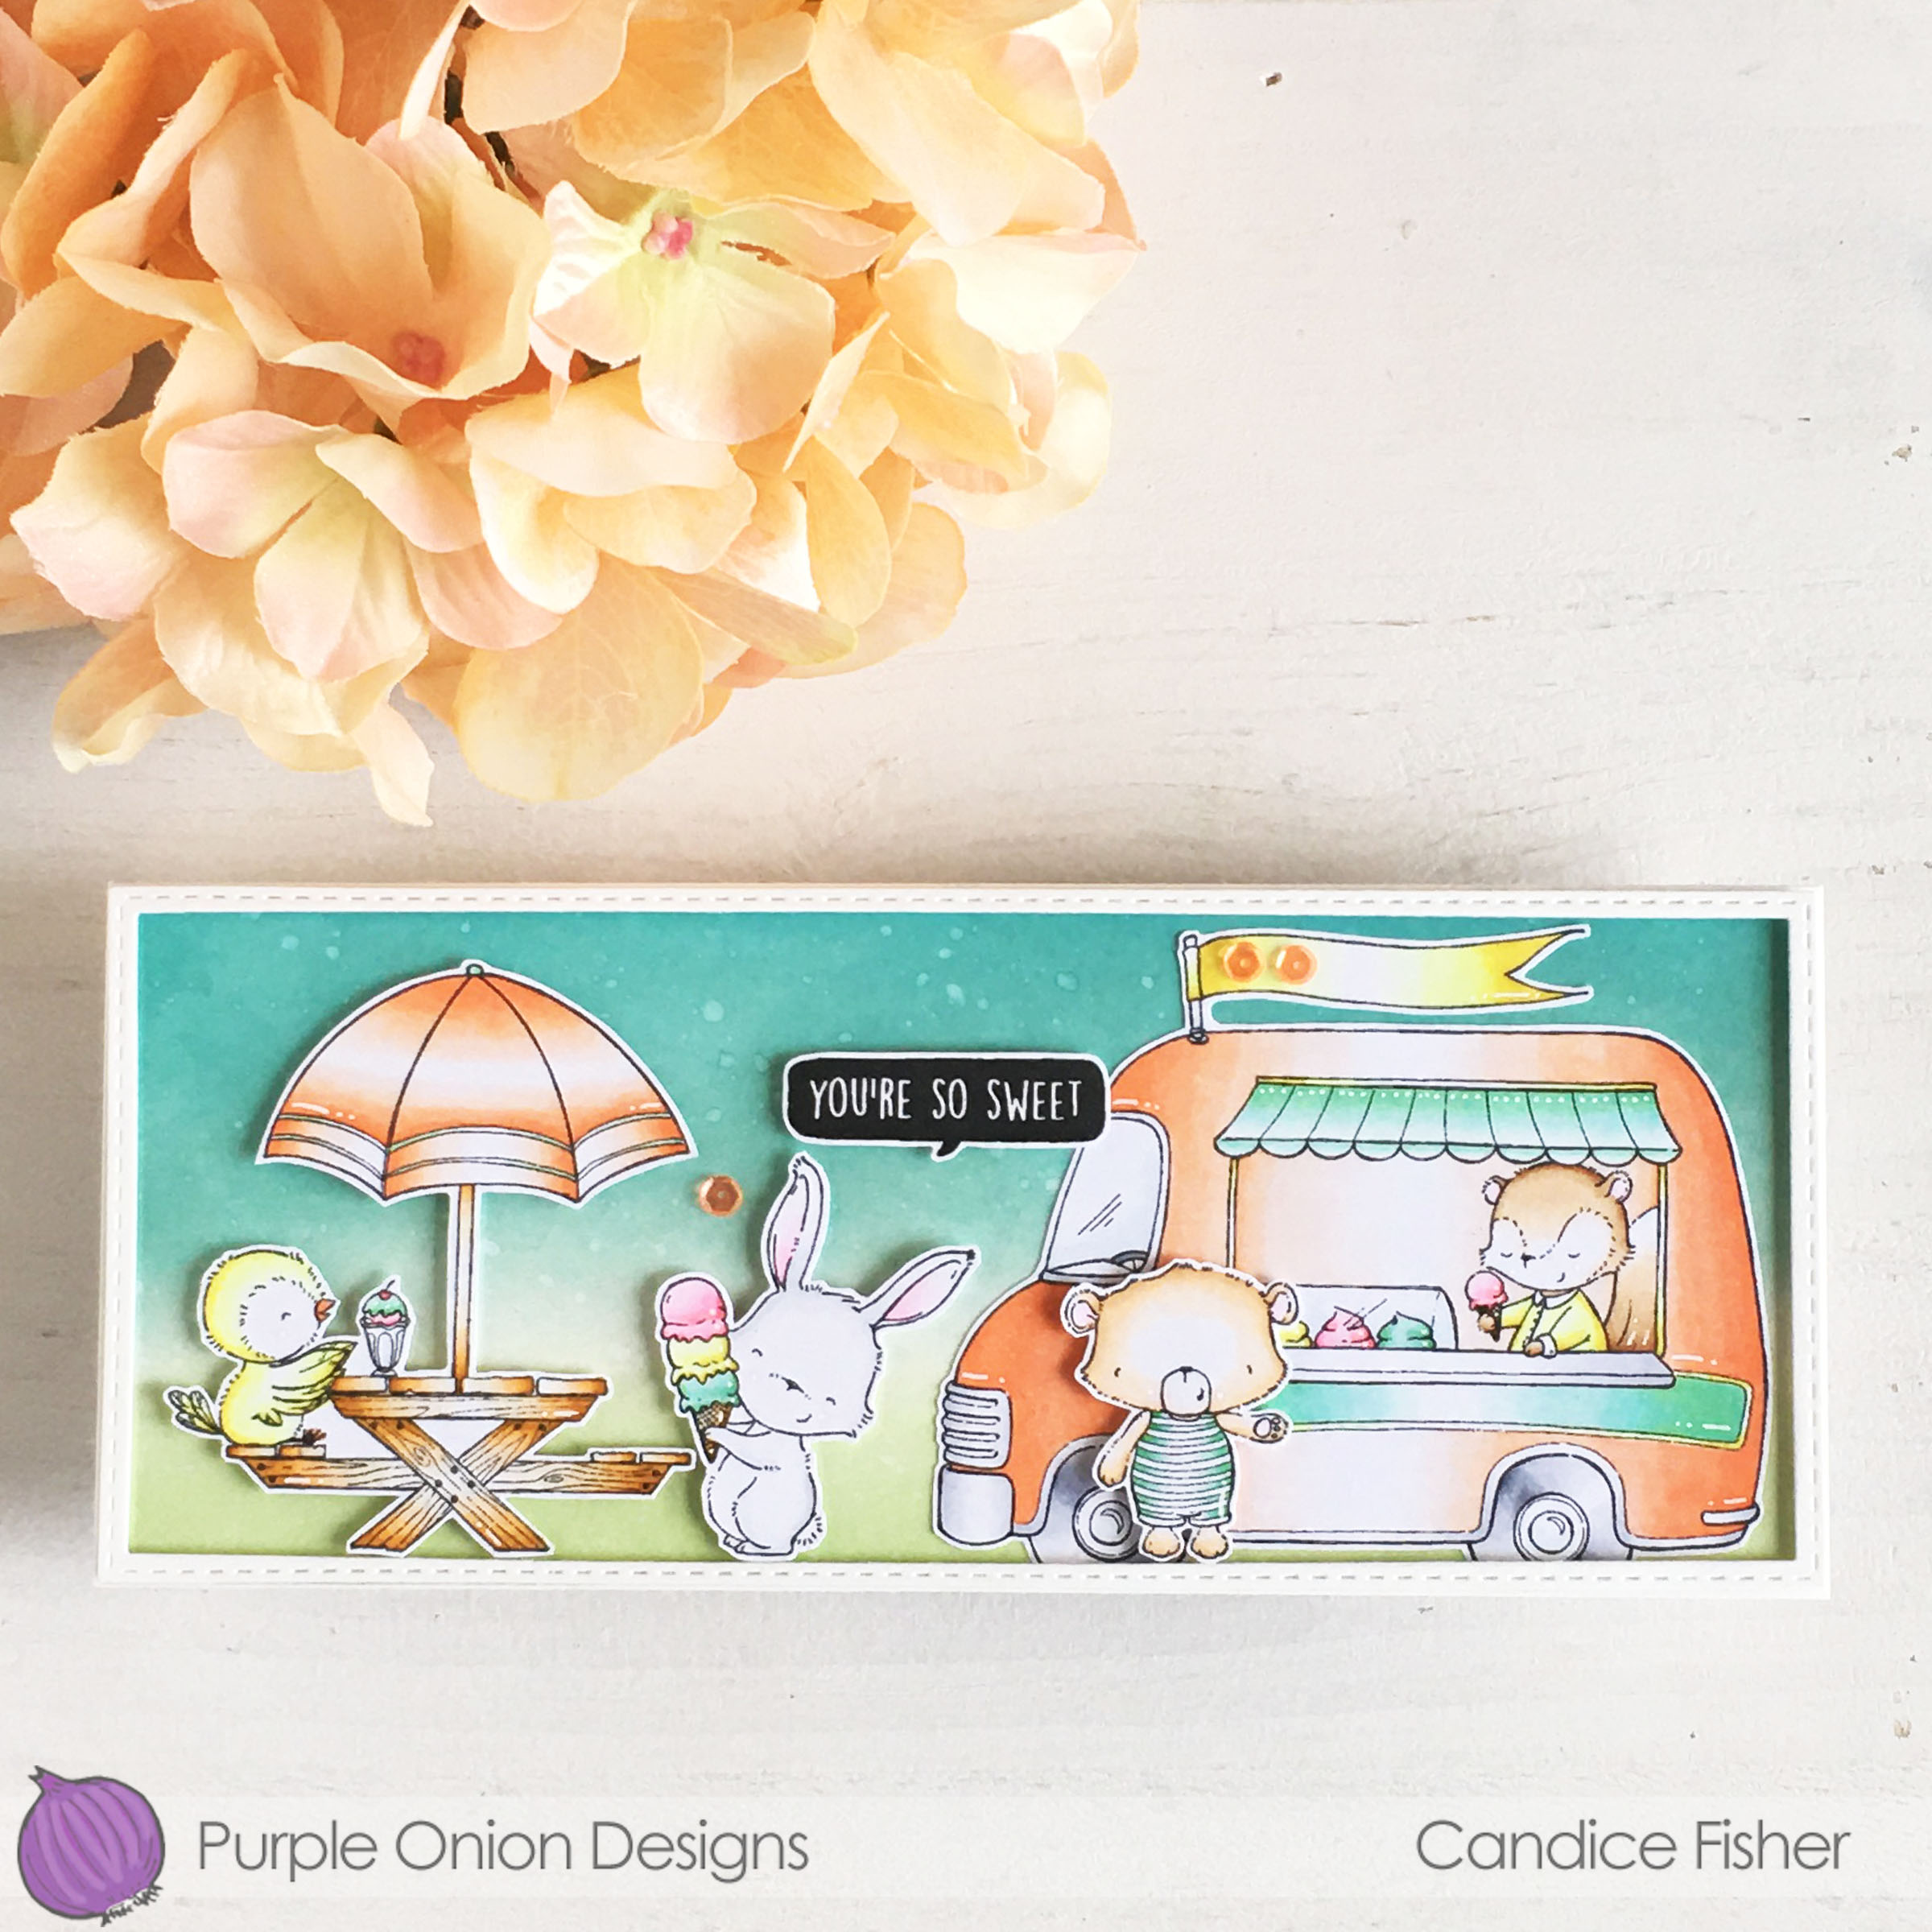 Candice-ice cream truck, Juliet, Marigold, Sandy